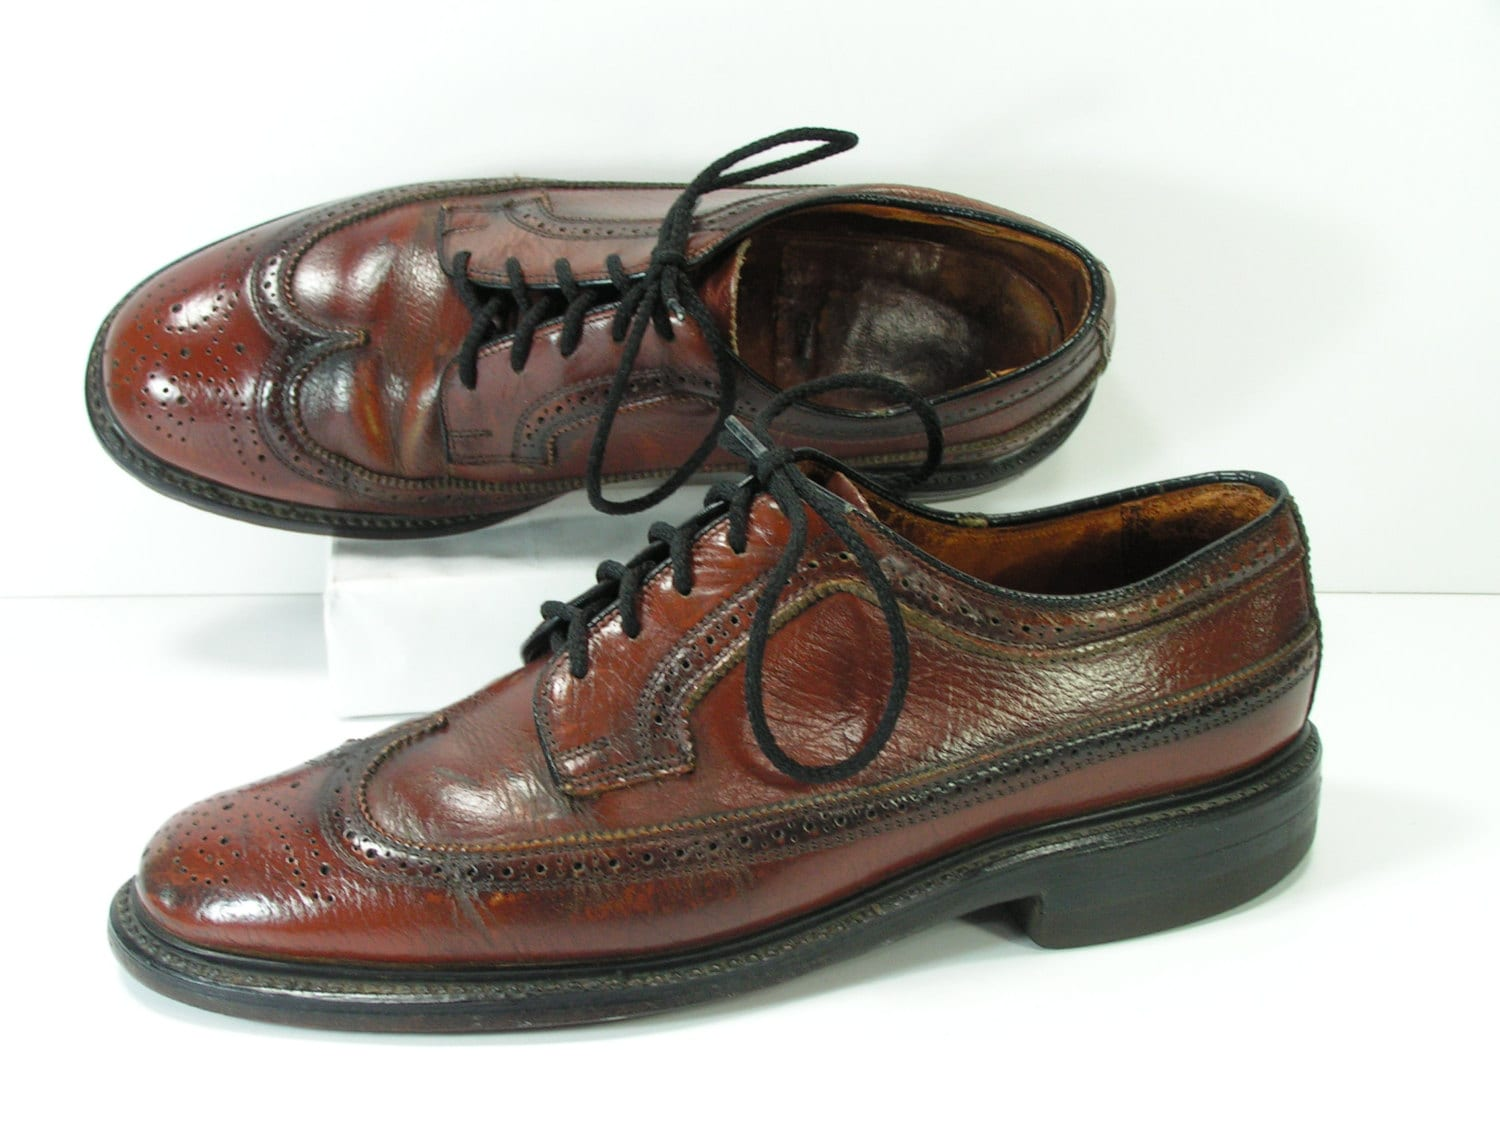 brogues wingtip shoes mens 8 5 d brown leather oxford wingtips